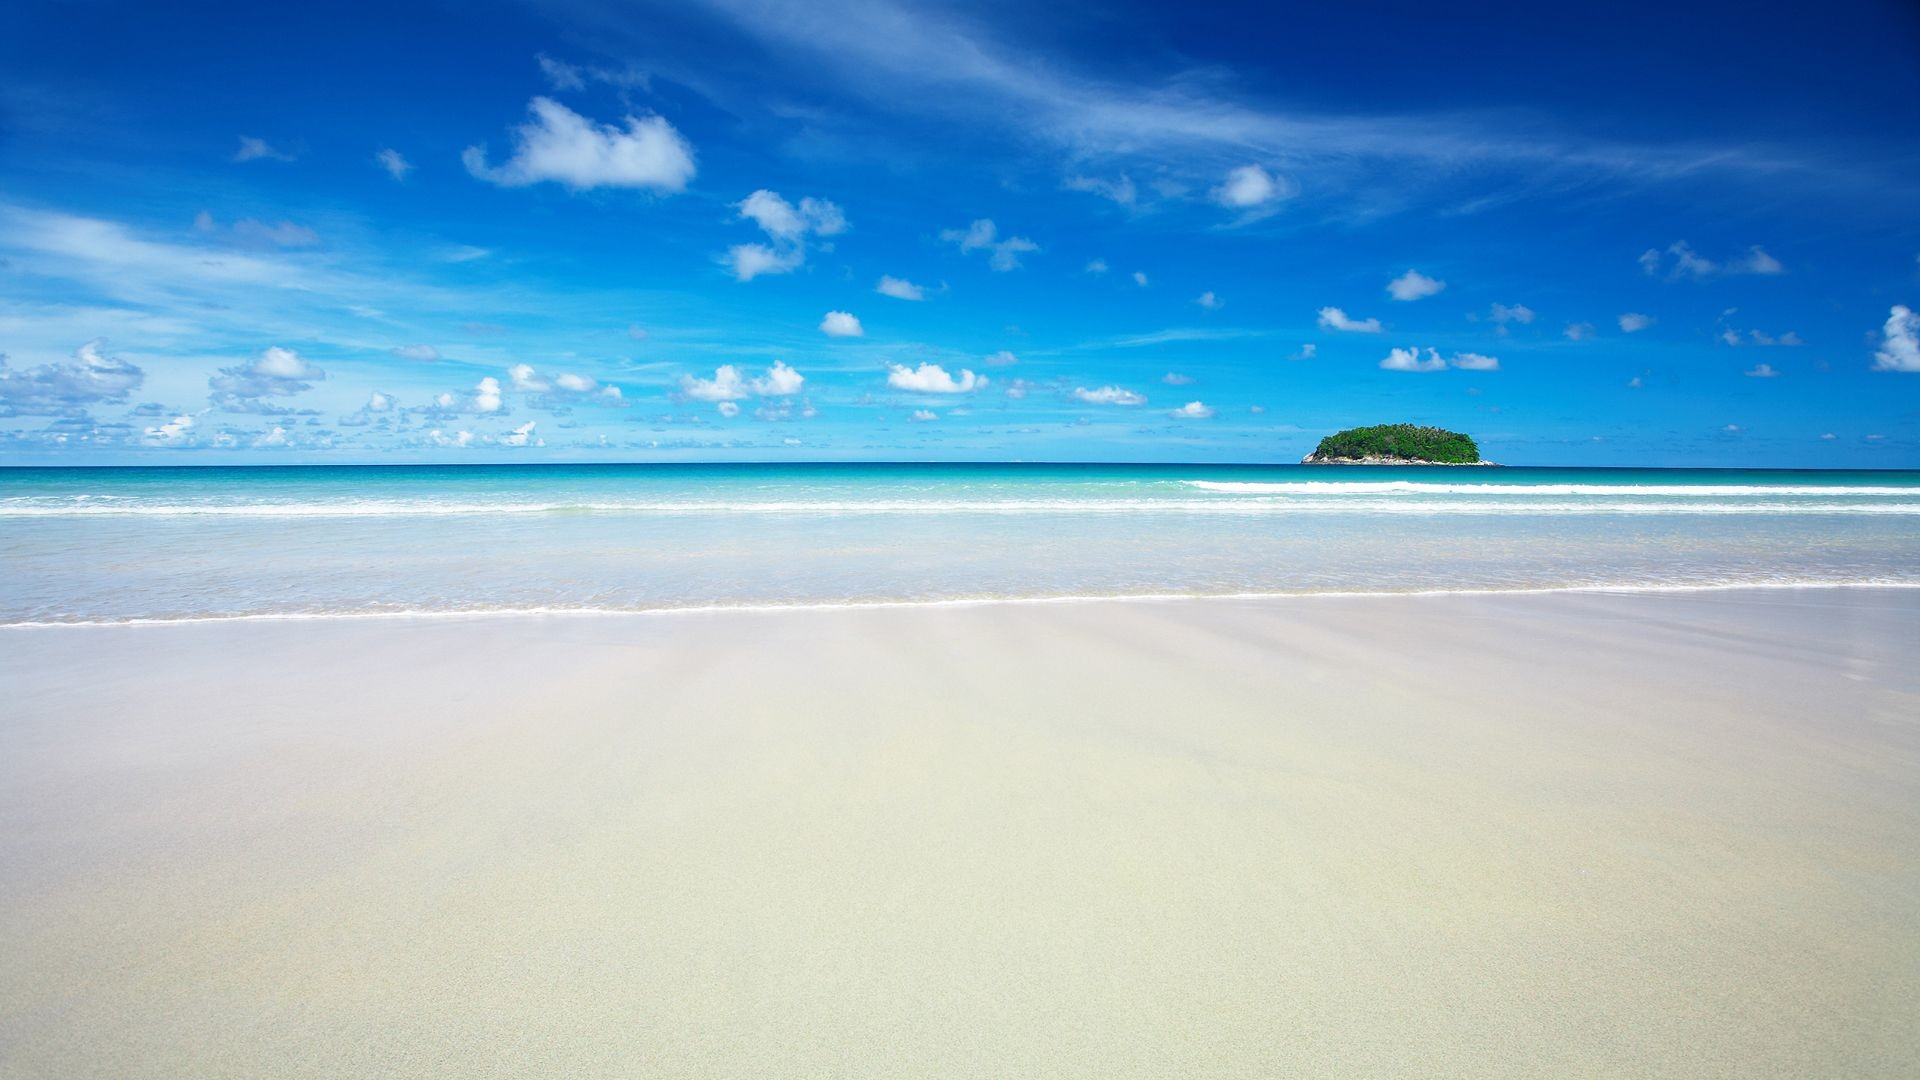 1920x1080 HD Sky Blue Beach Wallpapers | HD Wallpapers